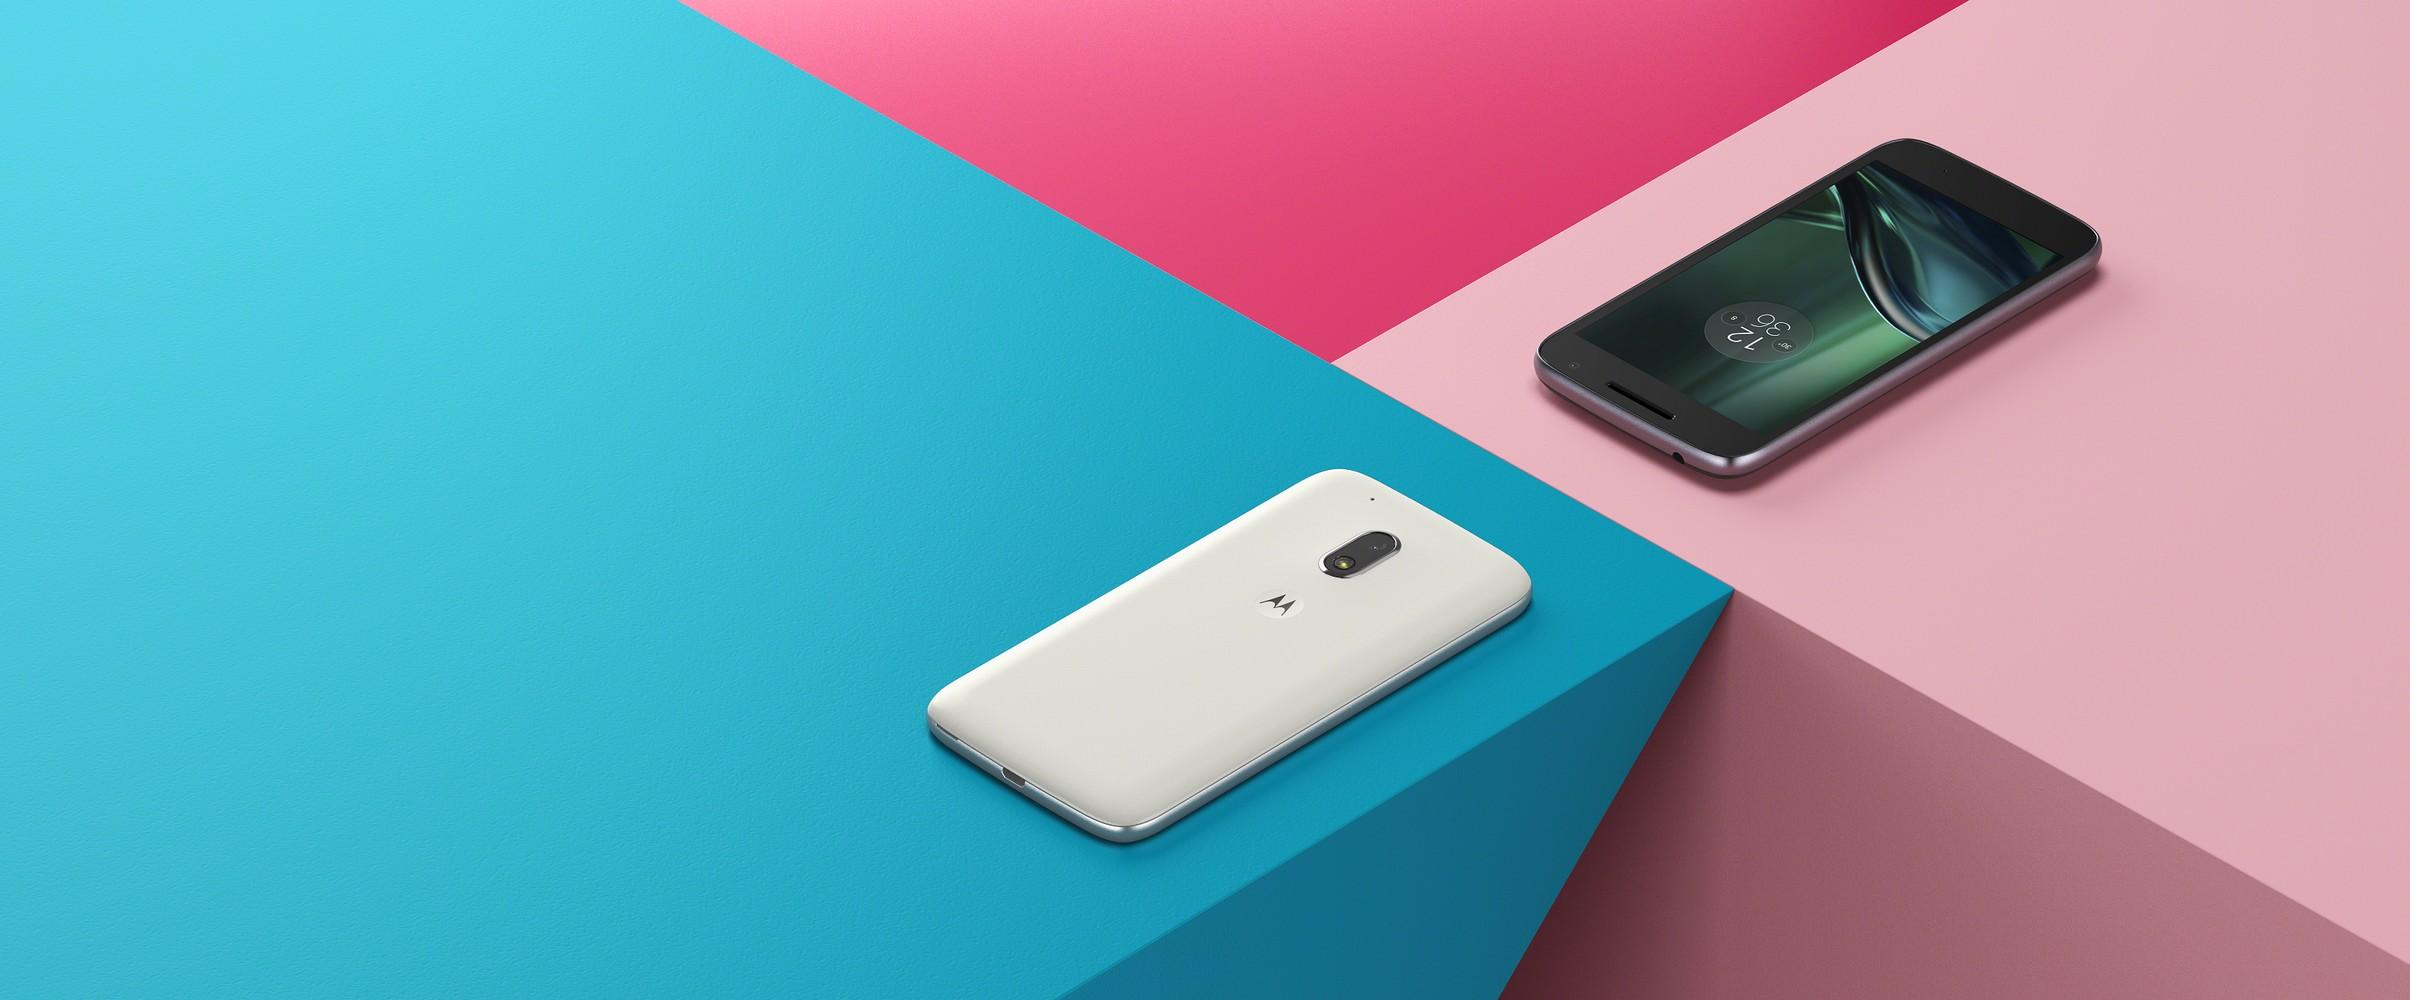 Moto G4 Play gets Android 7.1.1 Nougat Update, Finally! 1